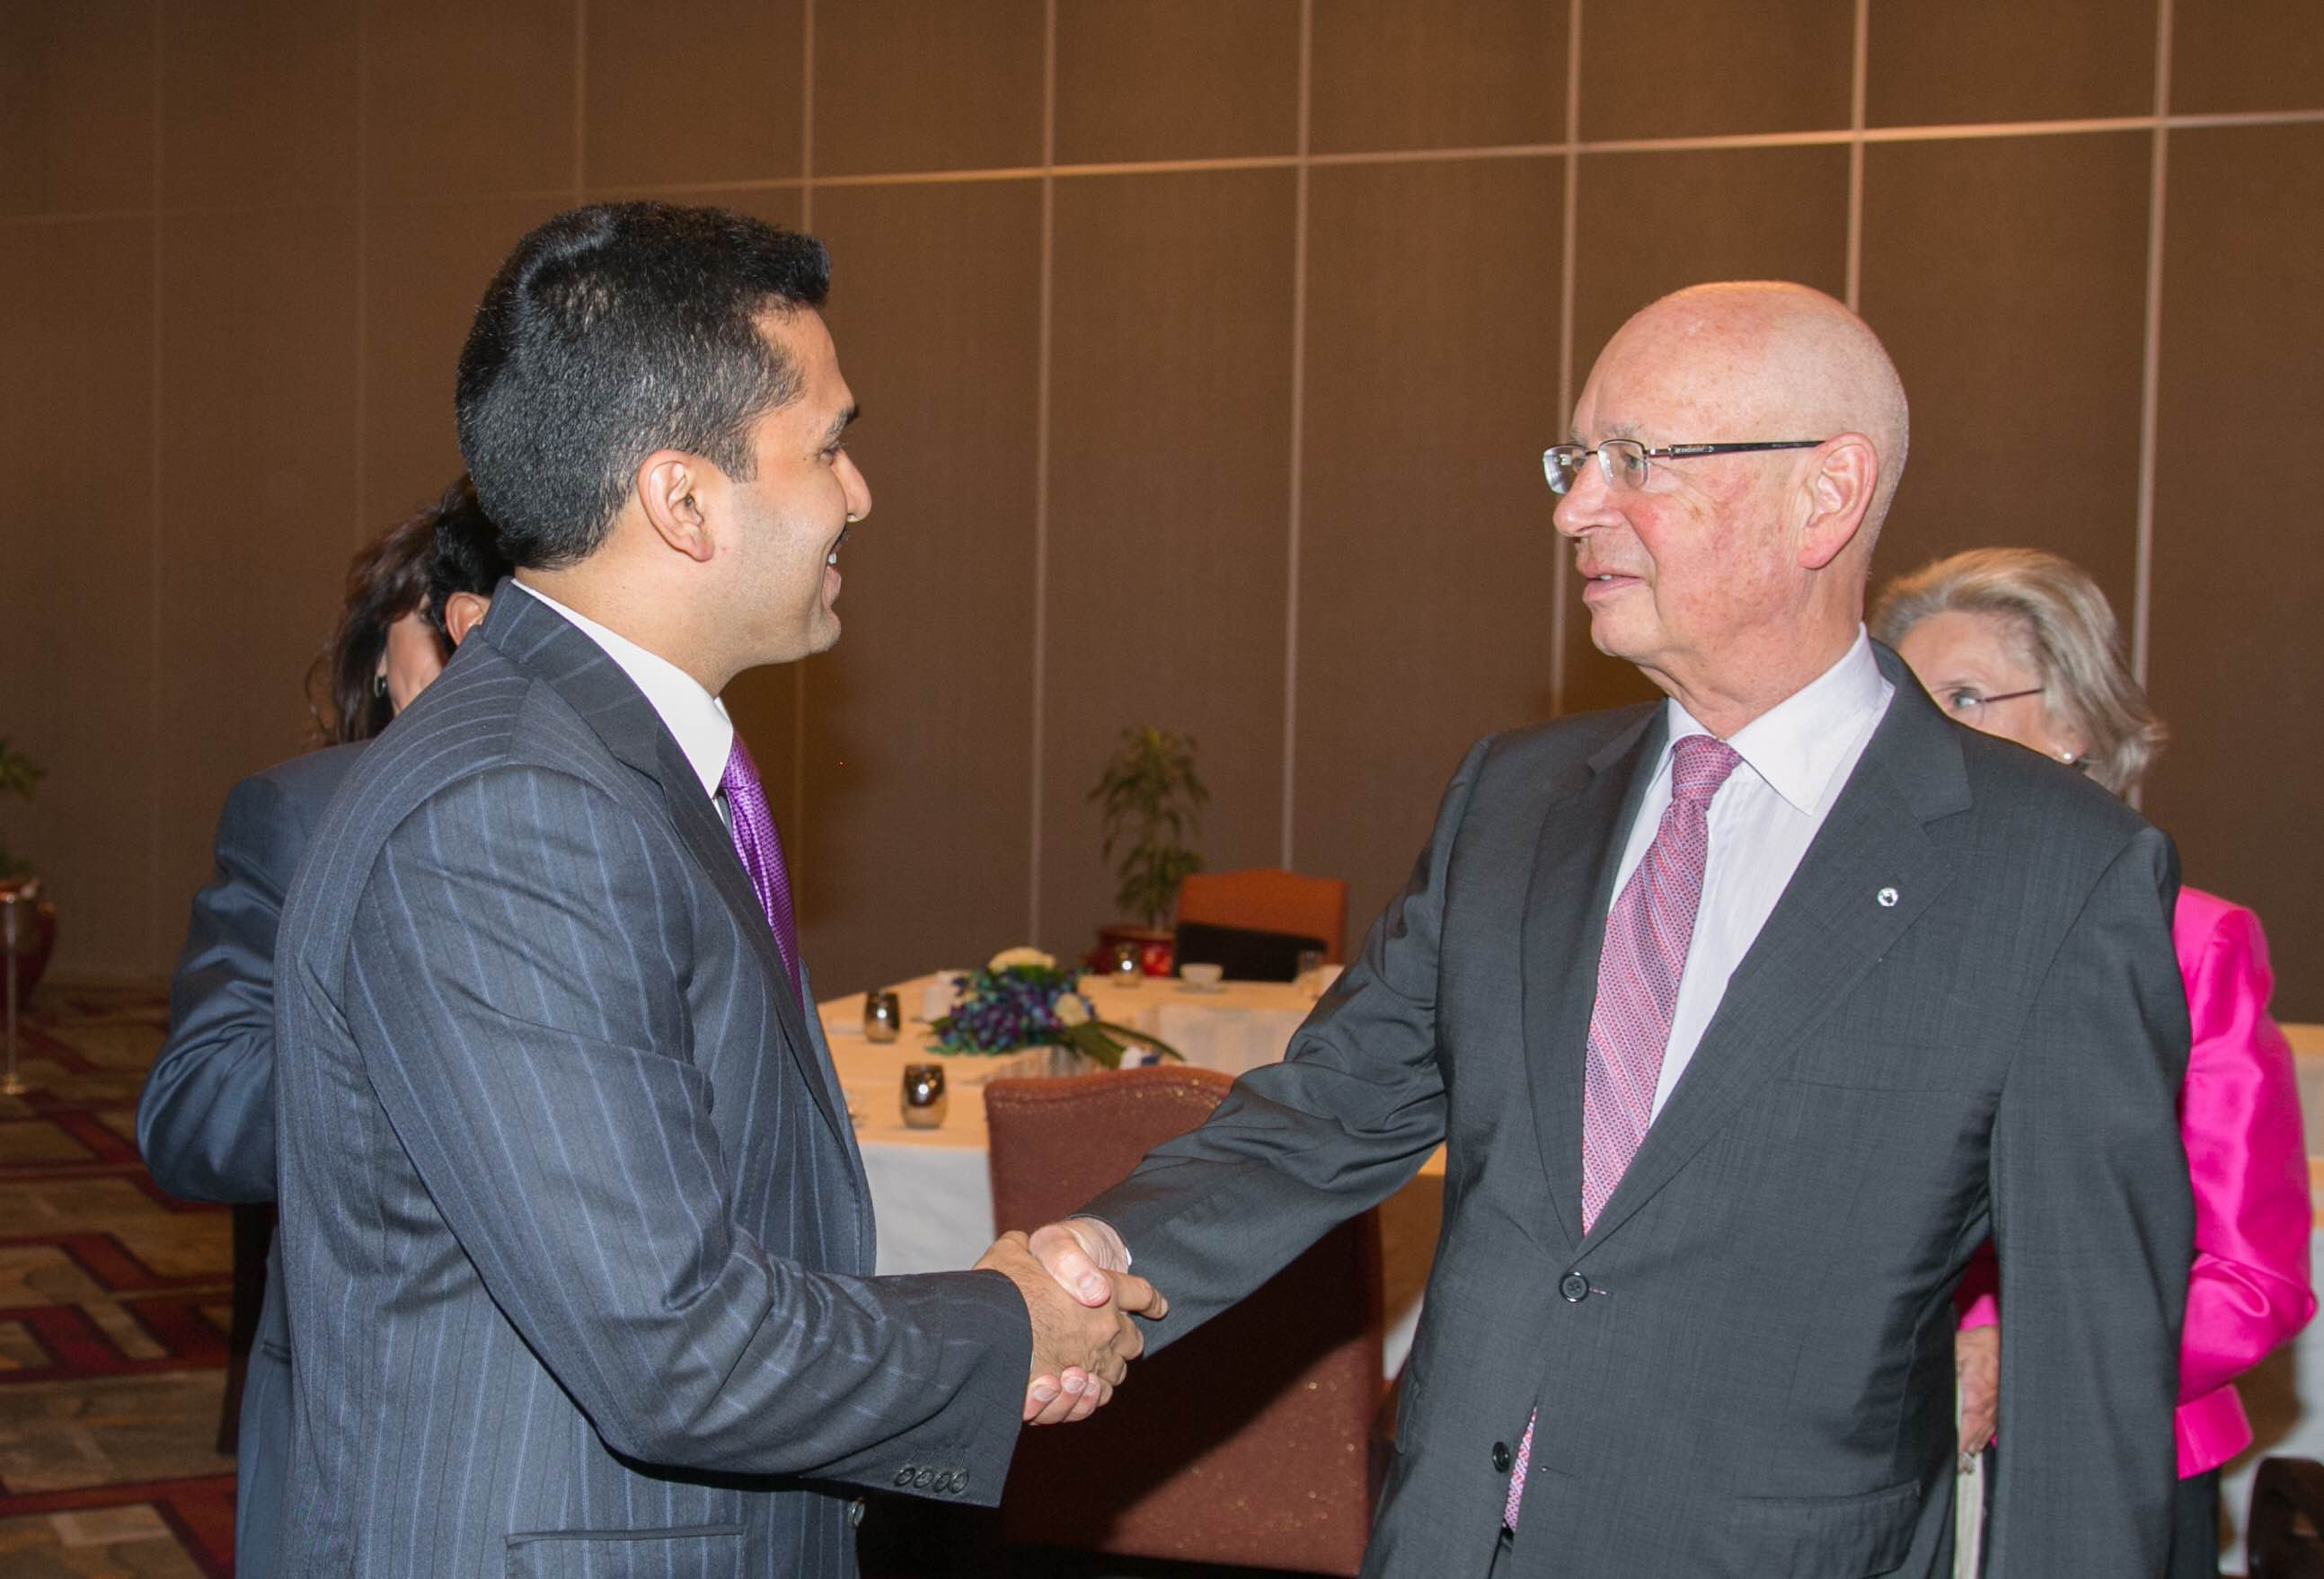 With Mr. Klaus Schwab, founder and Executive Chairman of the World Economic Forum